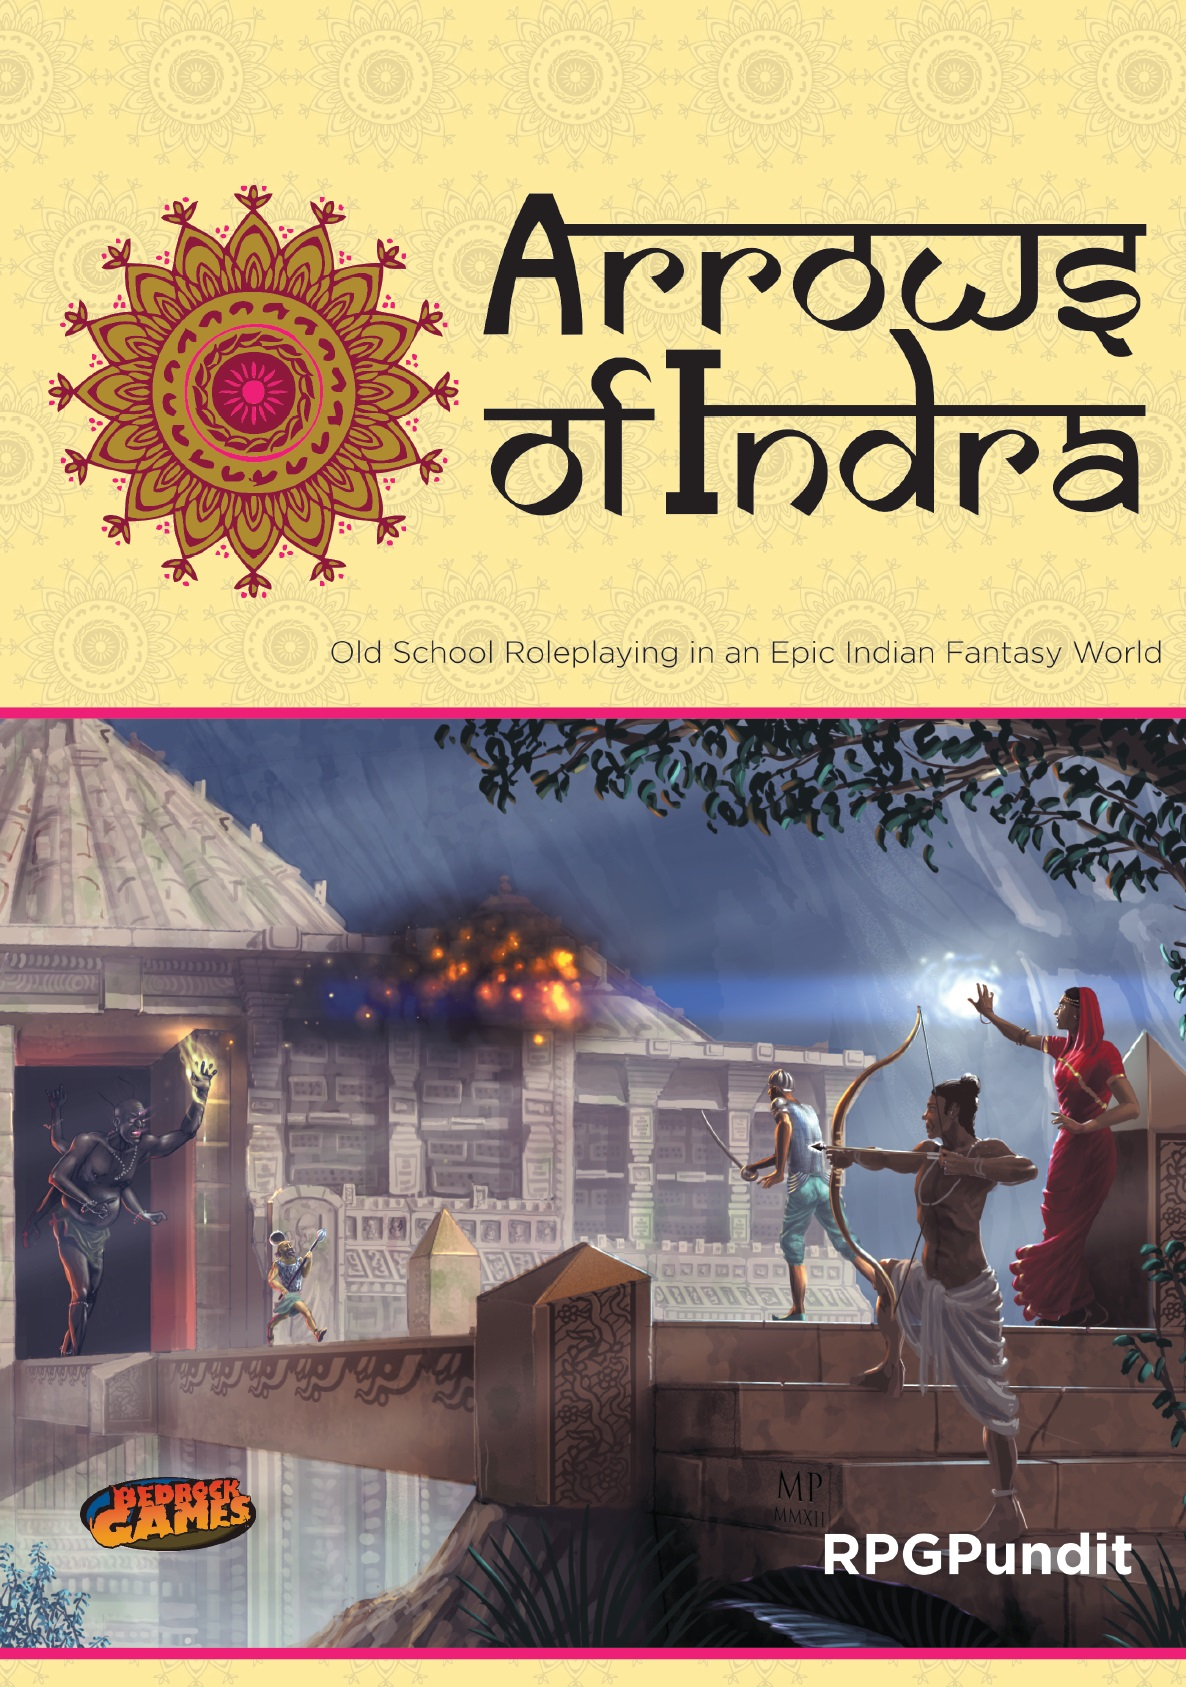 Bedrock Games: Arrows of Indra